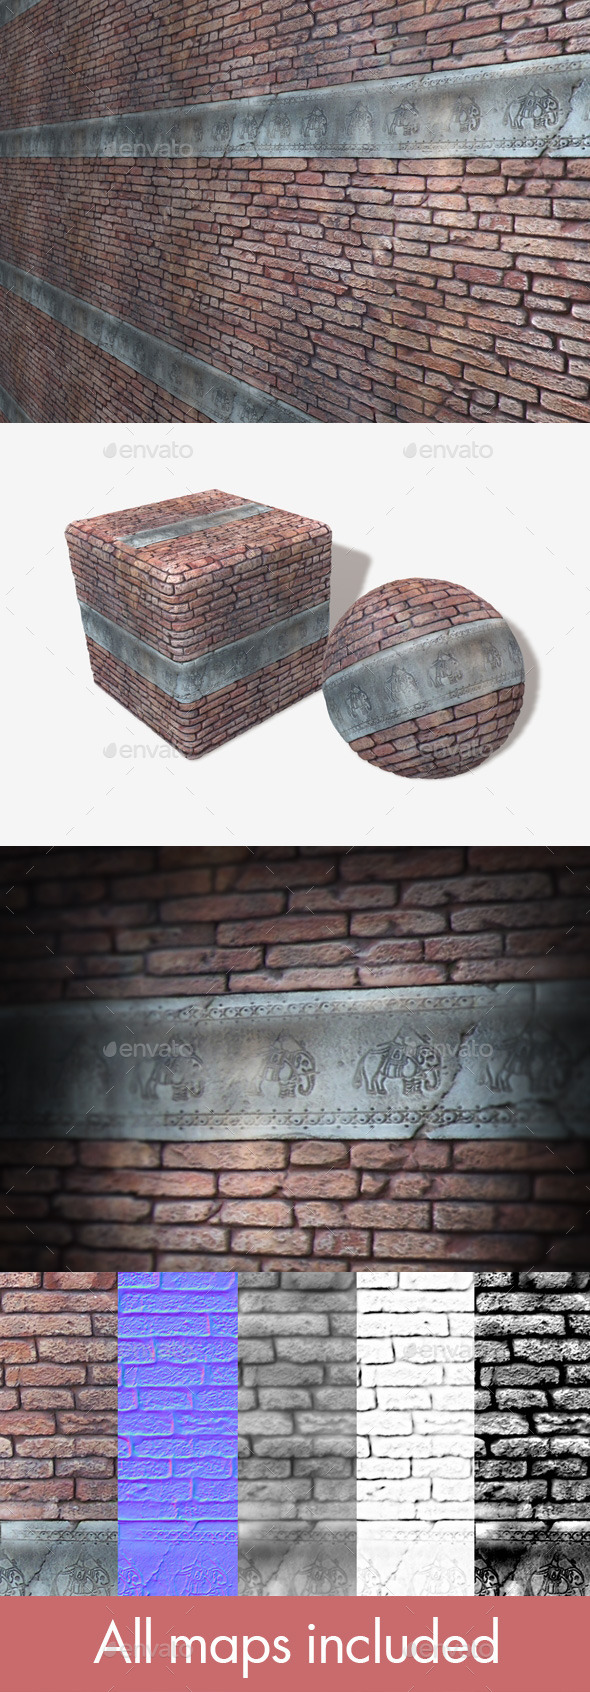 Carved Elephant Brick Wall Seamless Texture. - 3DOcean Item for Sale